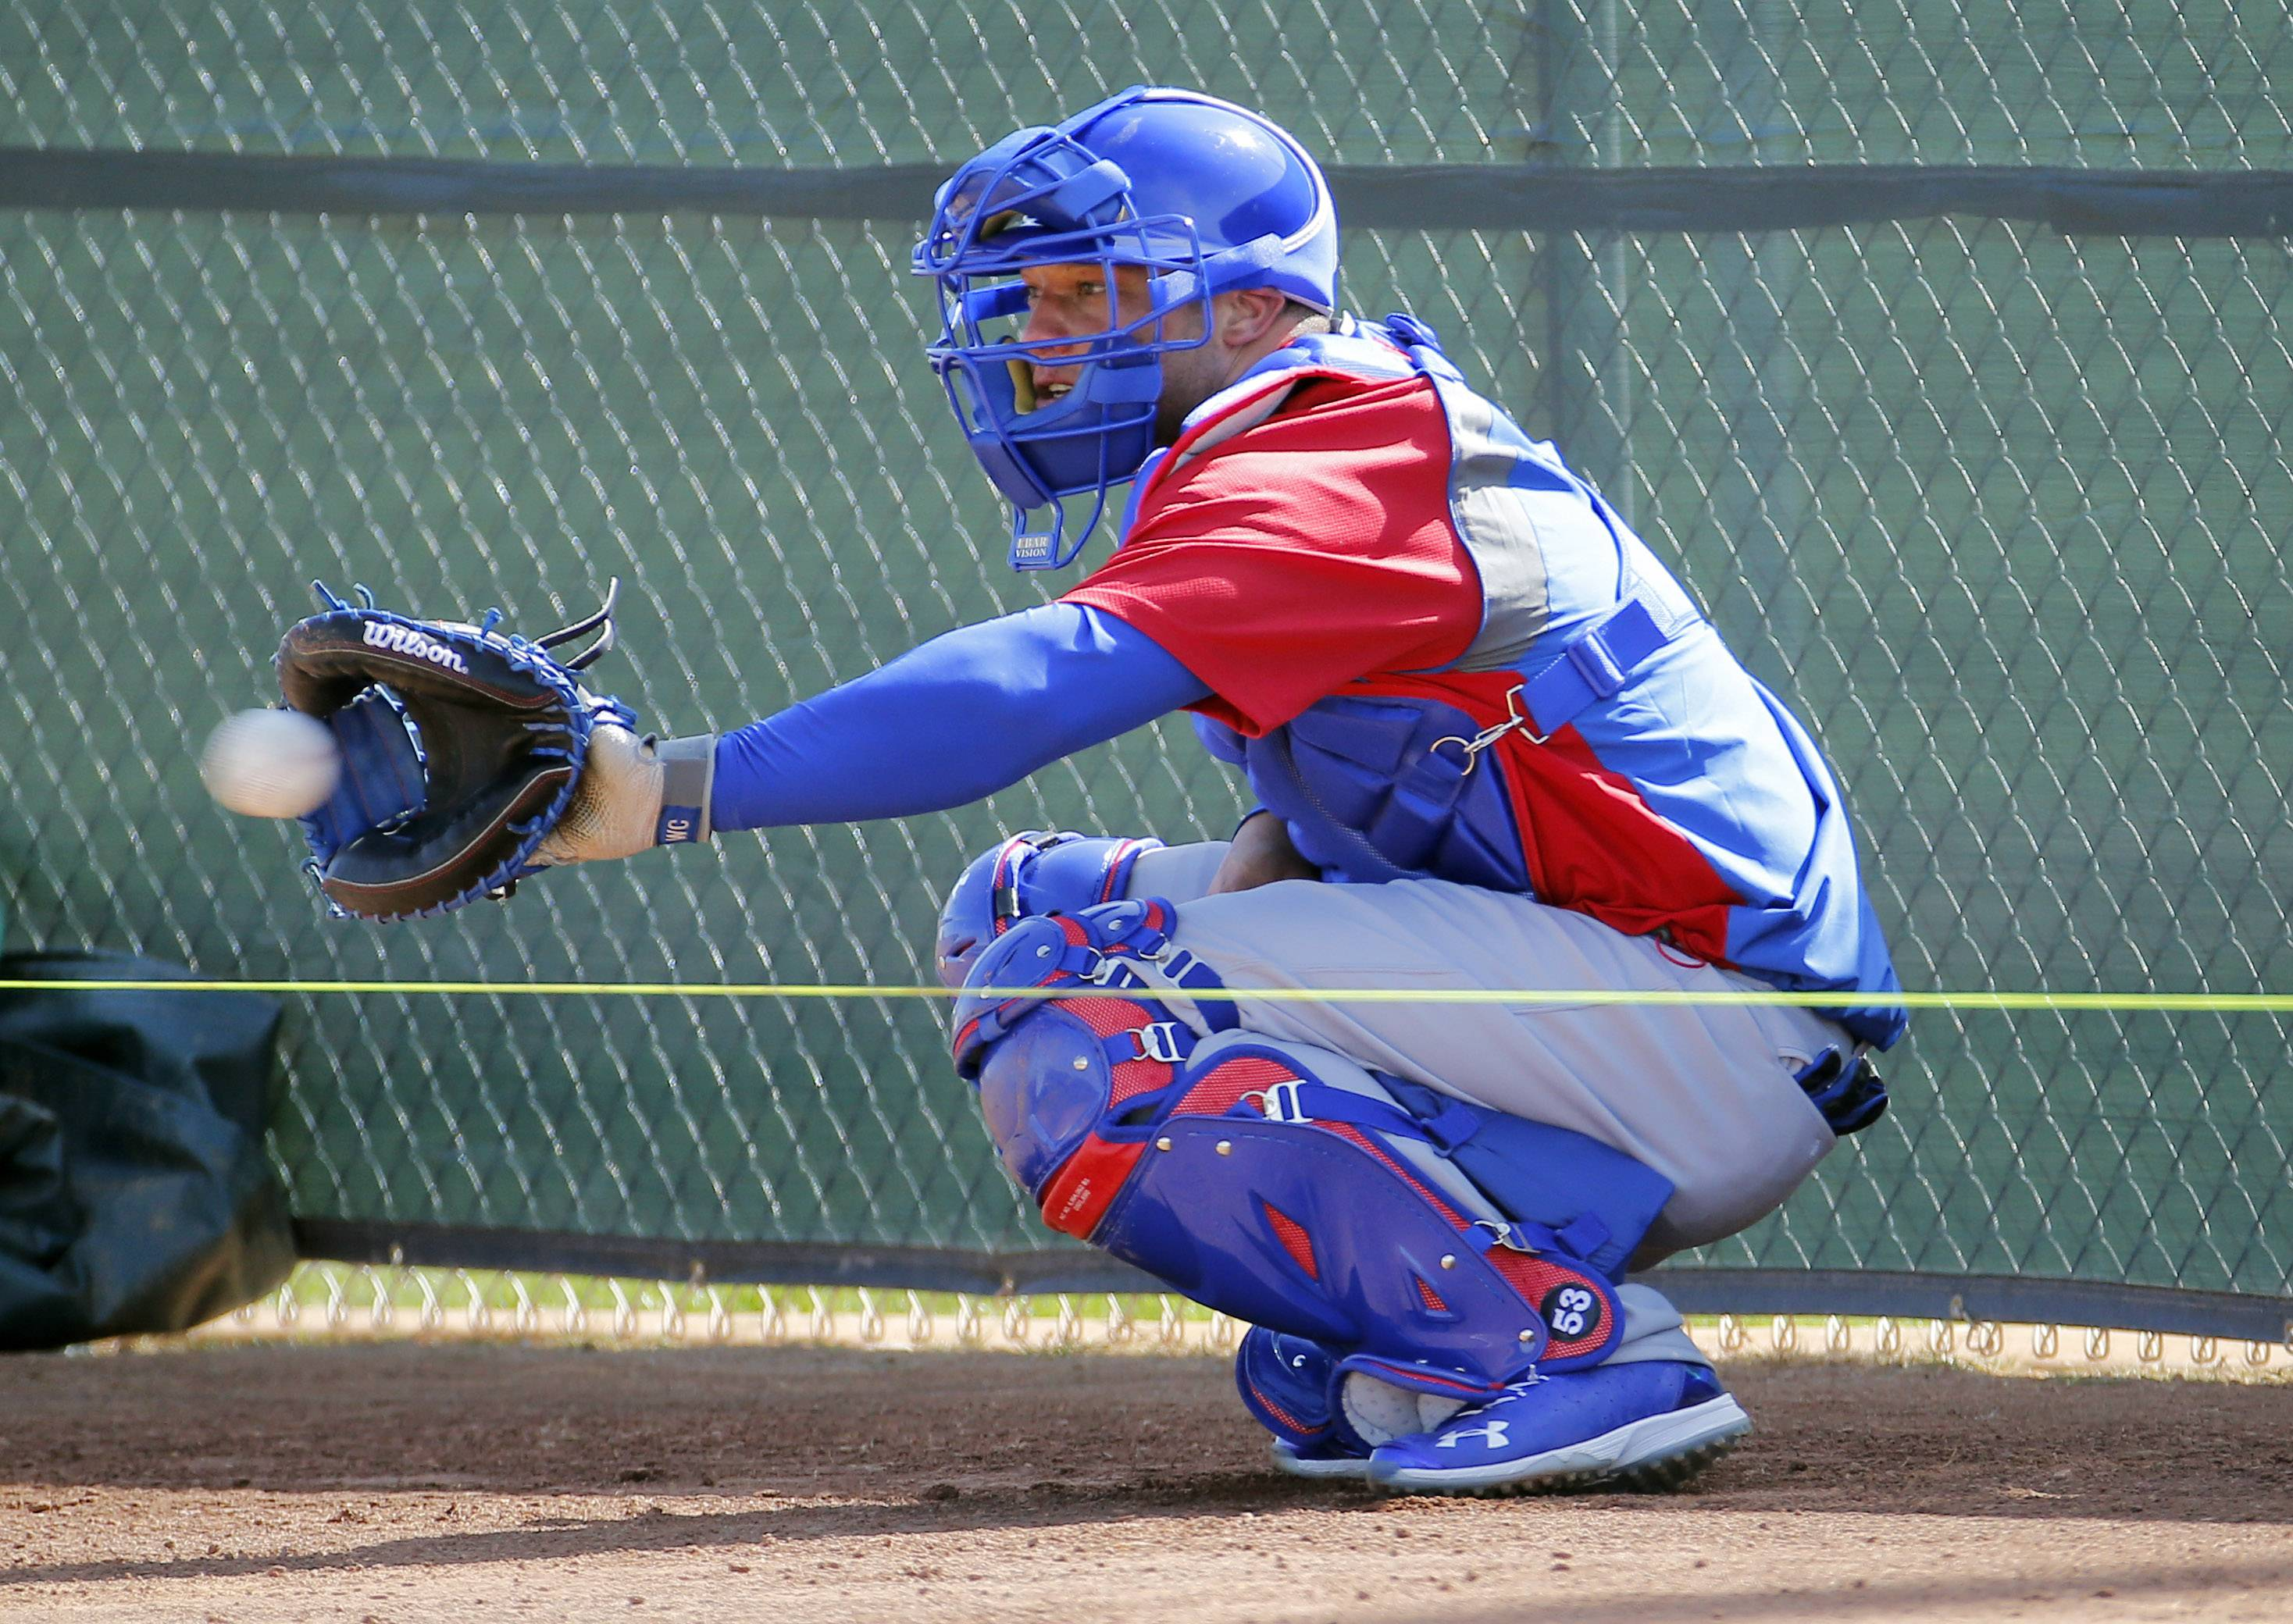 Chicago Cubs catcher Welington Castillo catches during the team's first spring training baseball practice, Friday, Feb. 14, 2014, in Mesa, Ariz.